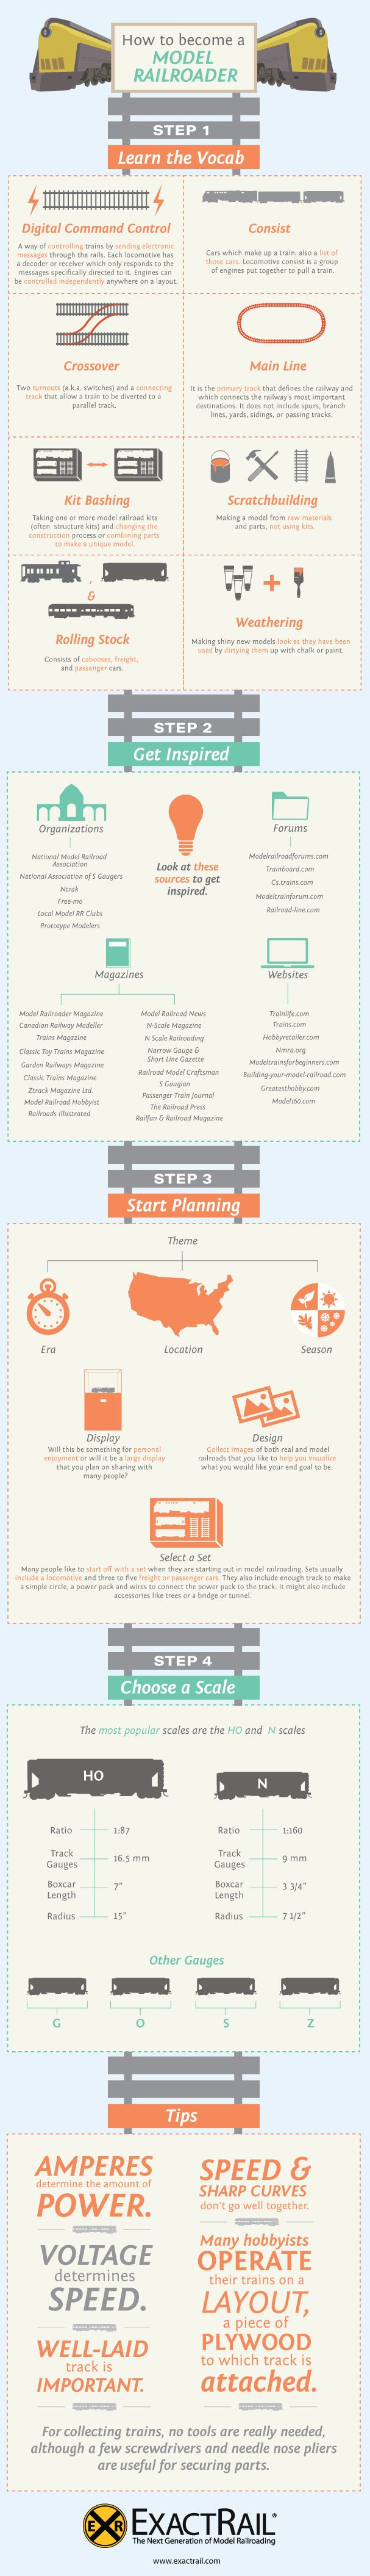 exactrail-infographic-become-a-railroader.png 607×4,221 pixels